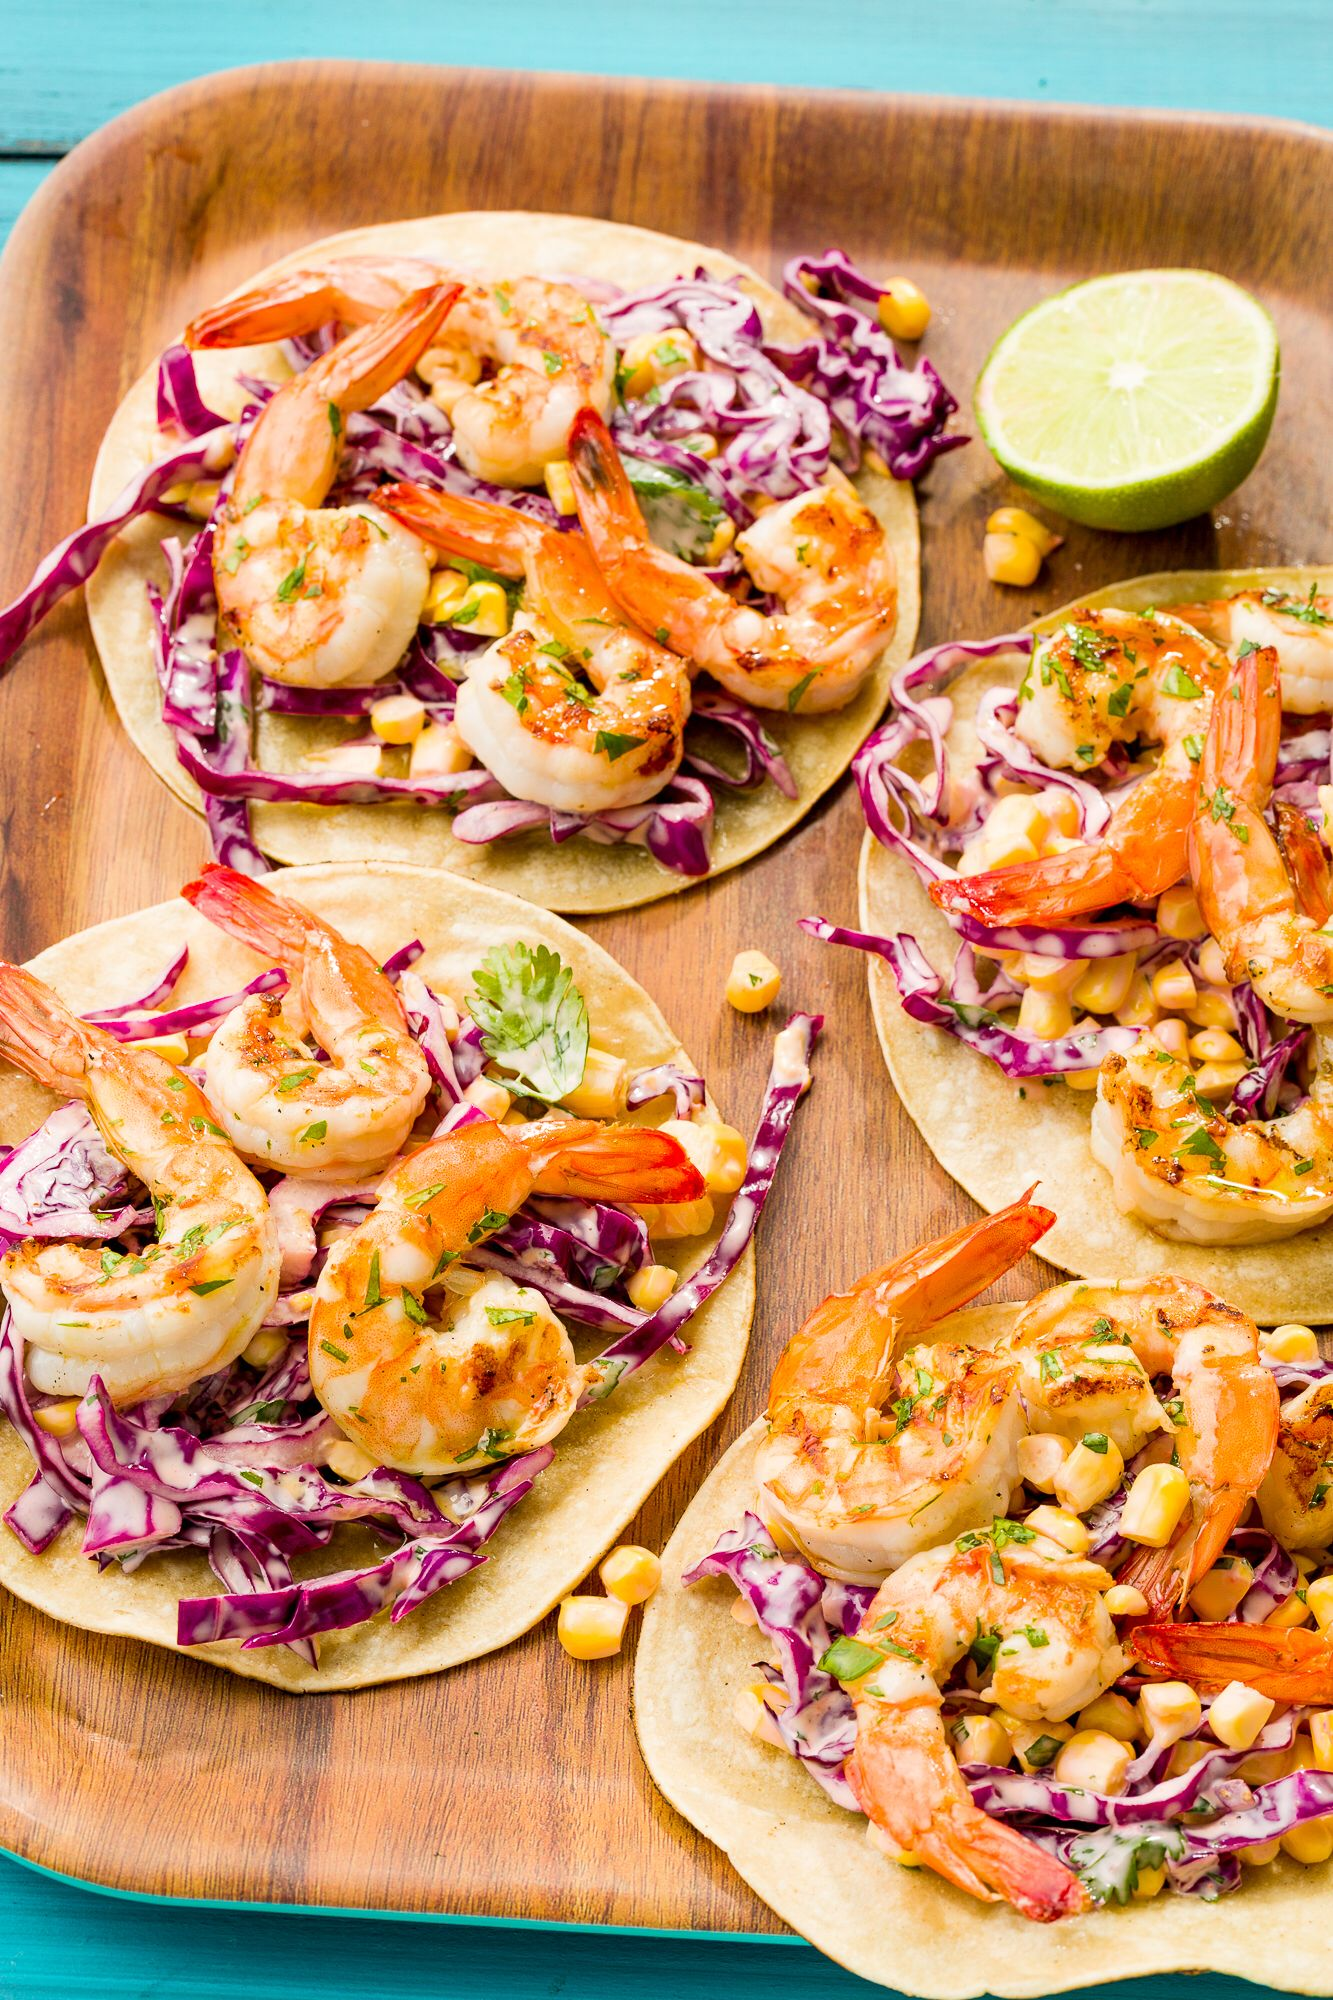 Grilled Shrimp Tacos with Sriracha Slaw  Smoky, grilled shrimp and spicy slaw are the keys to next-level tacos.  Get the recipe from Delish.